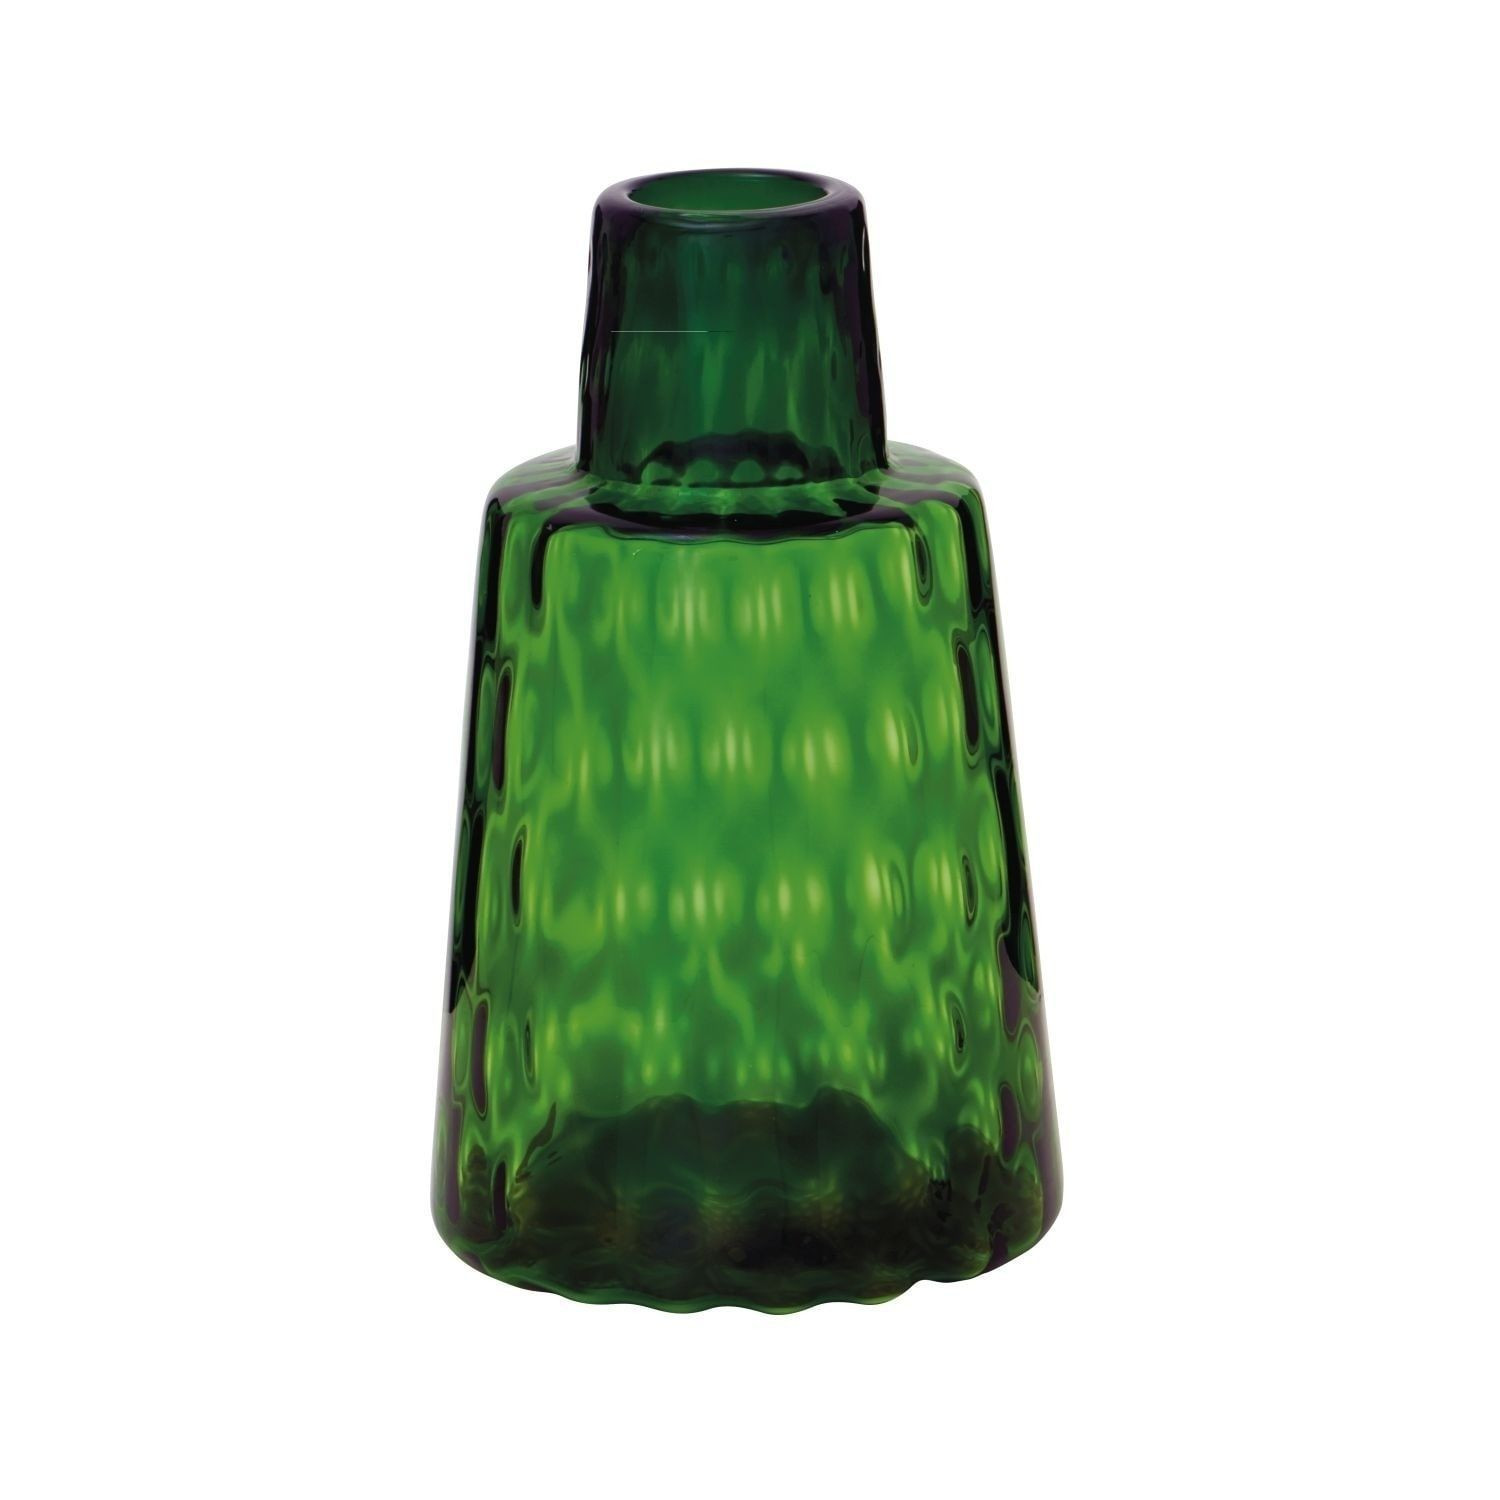 40 Inch Tall Vases Of Studio 350 Glass Green Vase 9 Inches Wide 14 Inches High Outlet with Products